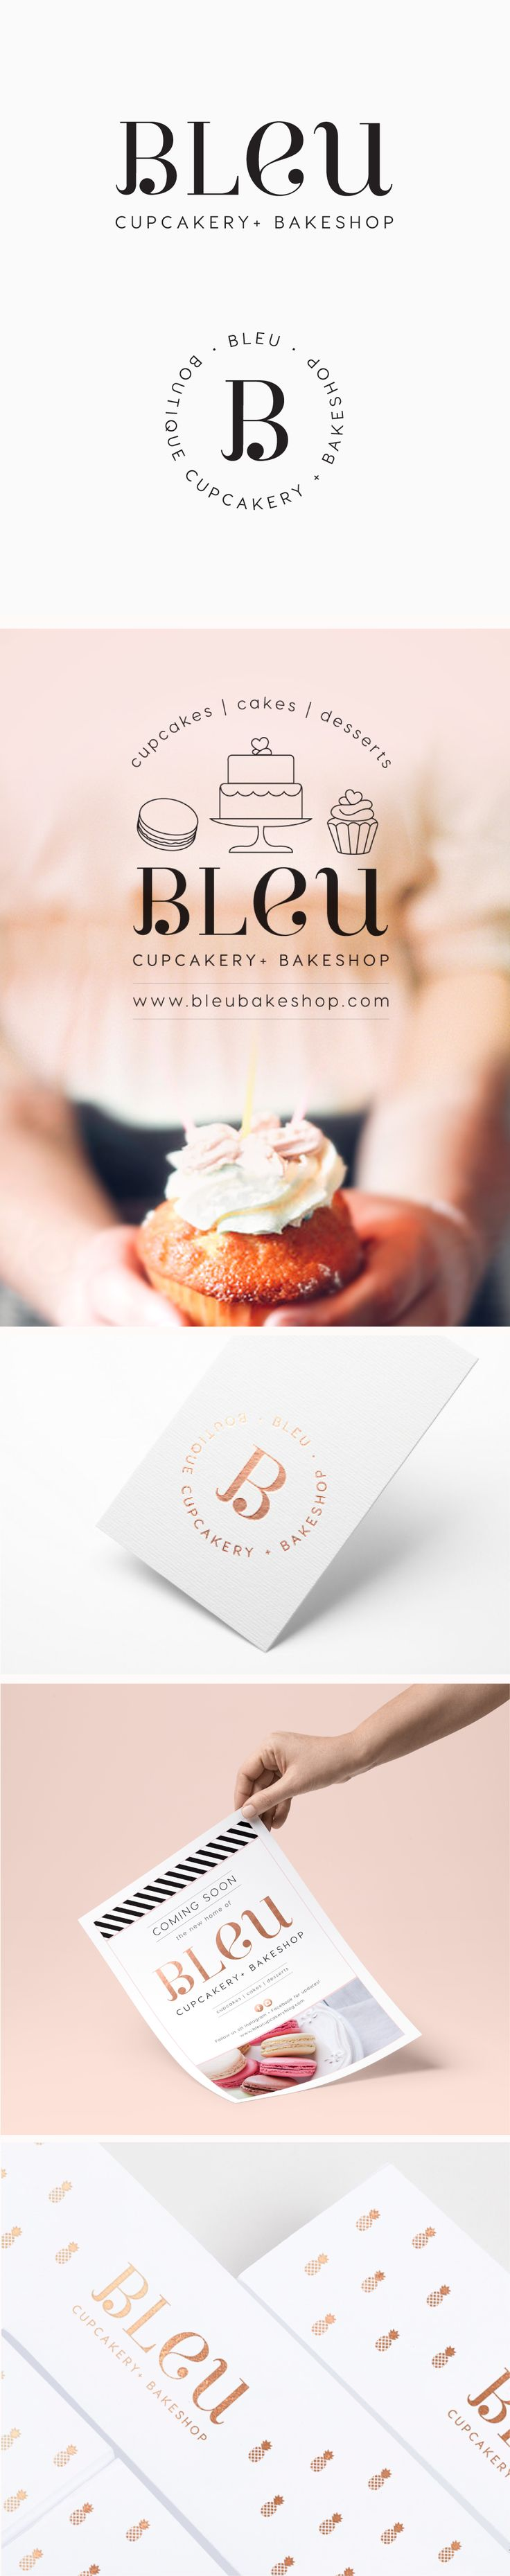 Bleu is a bakery based in Kailua-Kona, Hawaii who specialise in the creation of gourmet cupcakes, cakes and mini deserts. The owners of Bleu requested Inkee Press create a simplistically elegant logo which oozed deliciousness and included their tagline of Boutique Cupcakery + Bakeshop. With their colour choices of black, blush pink and gold, Bleu wanted a clean, feminine and elegant logo which easily identified them as an upmarket and boutique bakery.